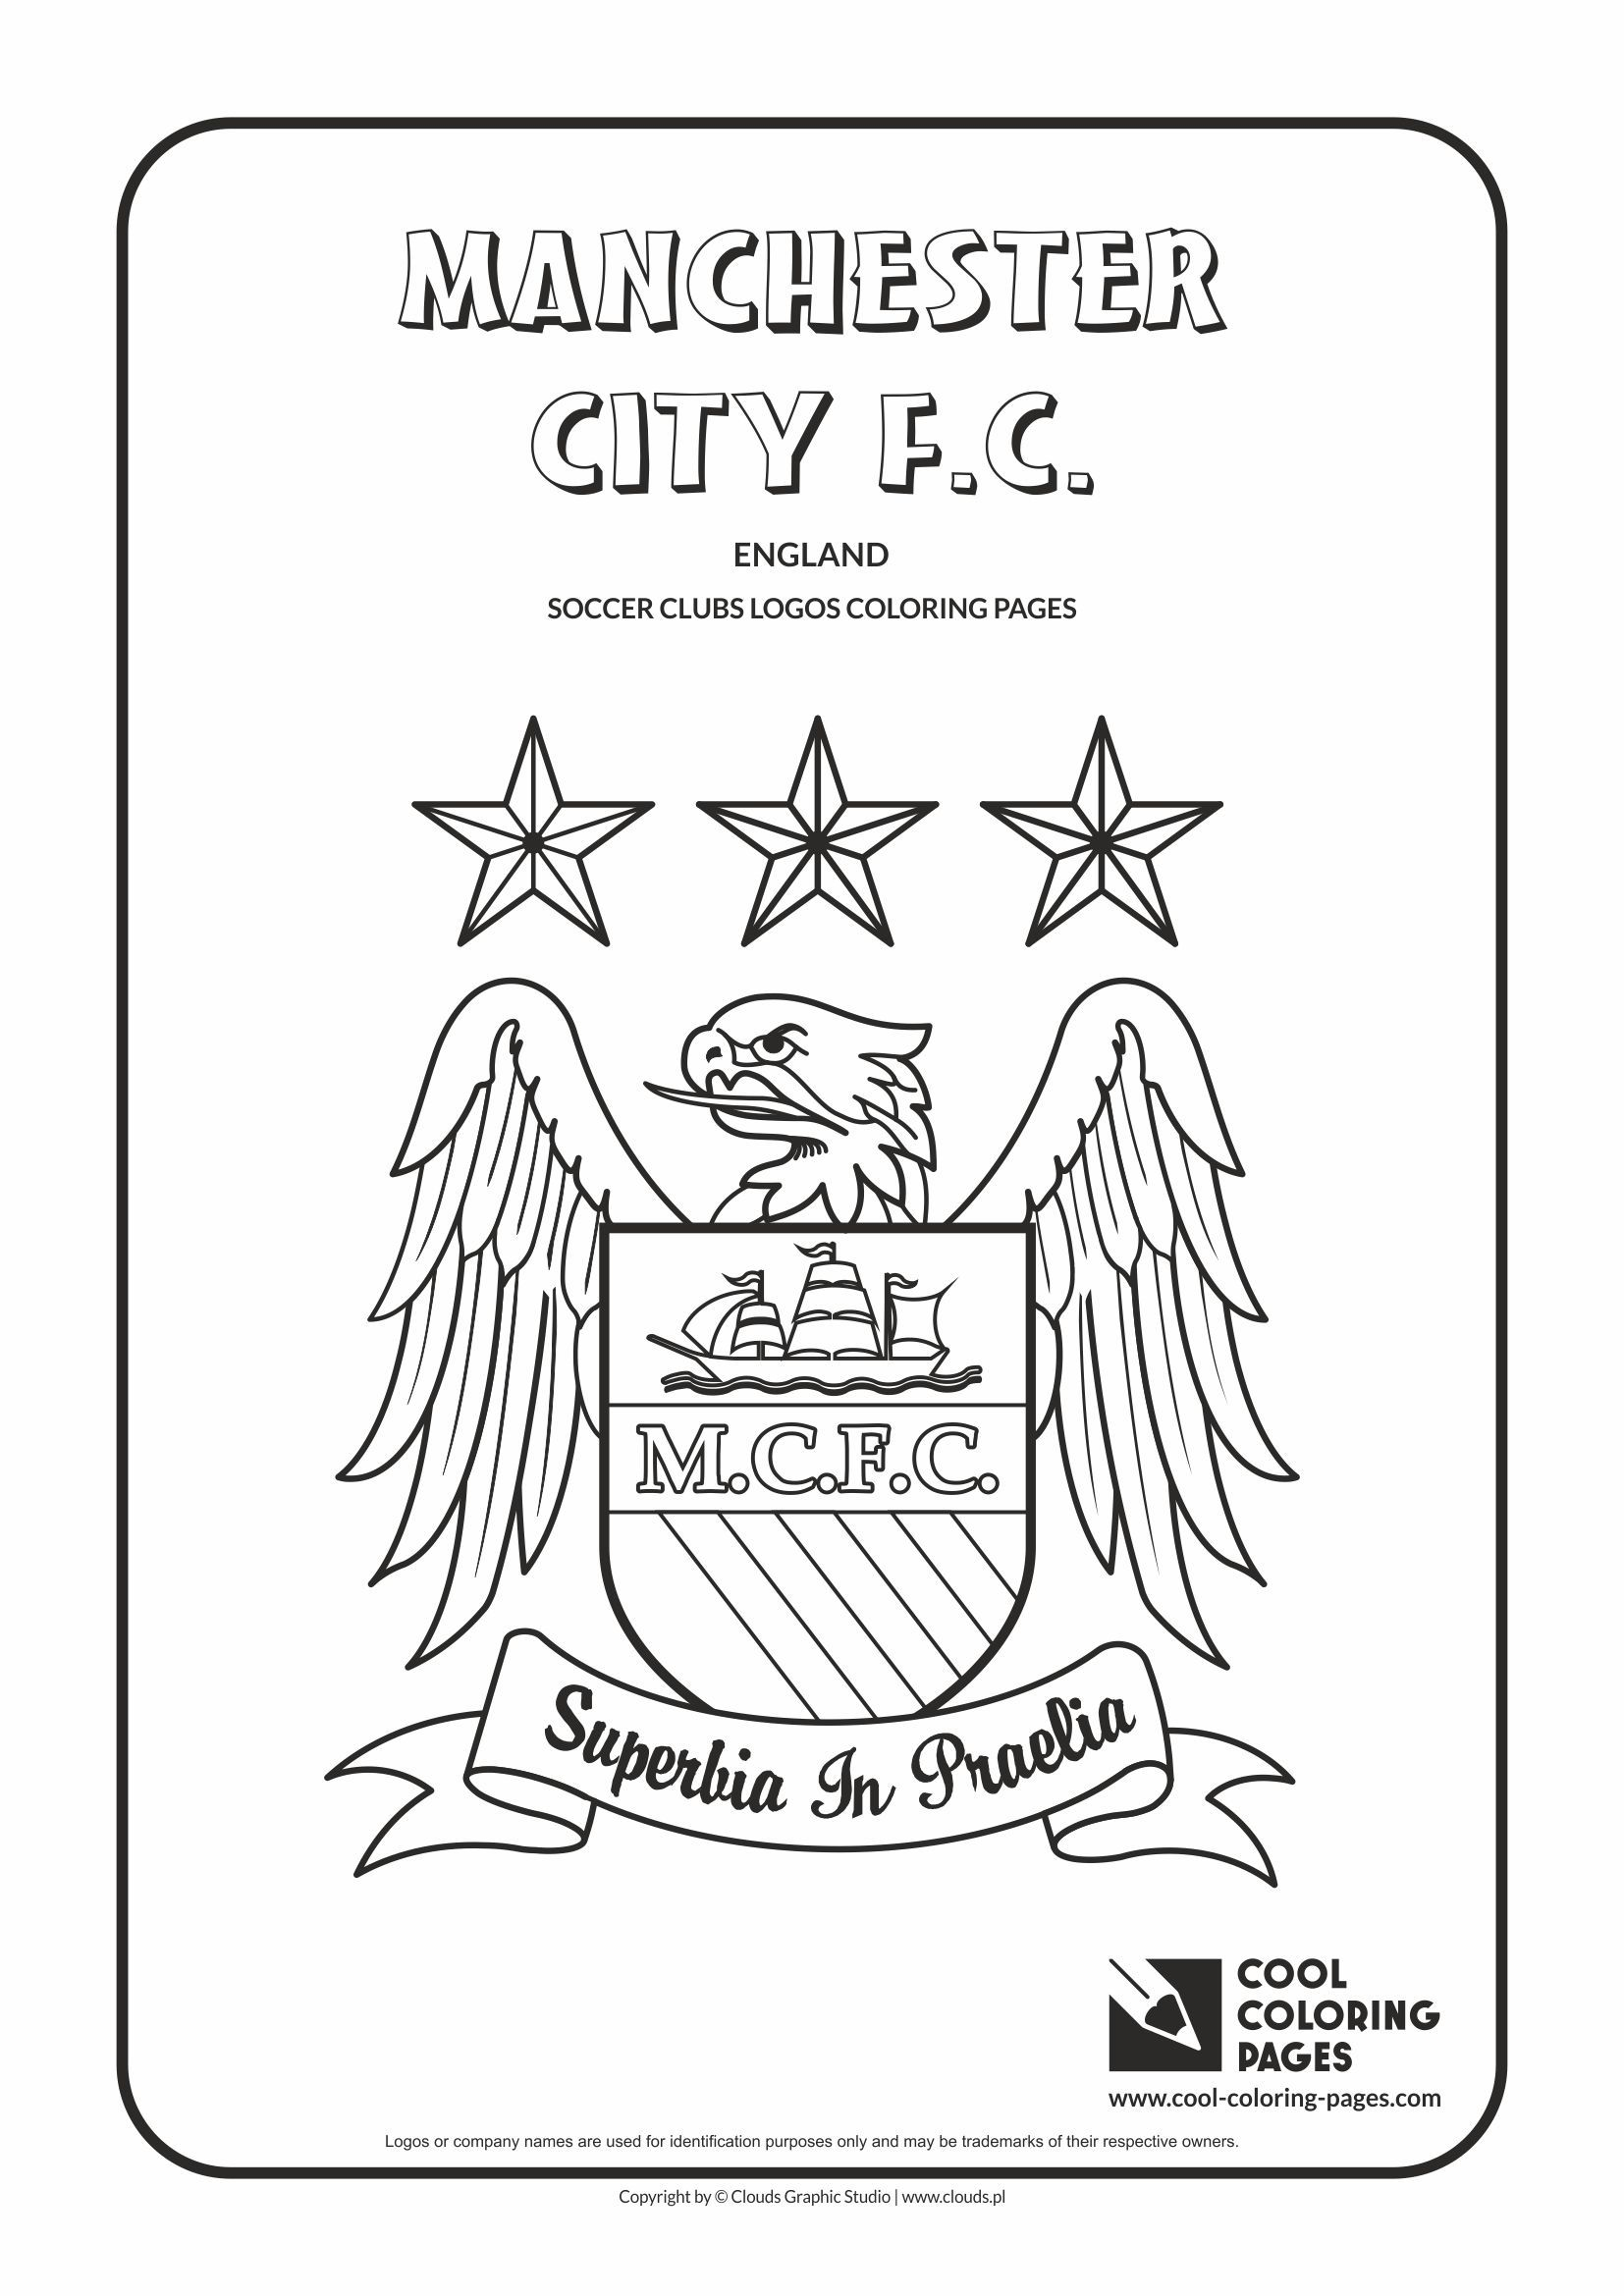 Cool Coloring Pages Soccer Clubs Logos Manchester City FC